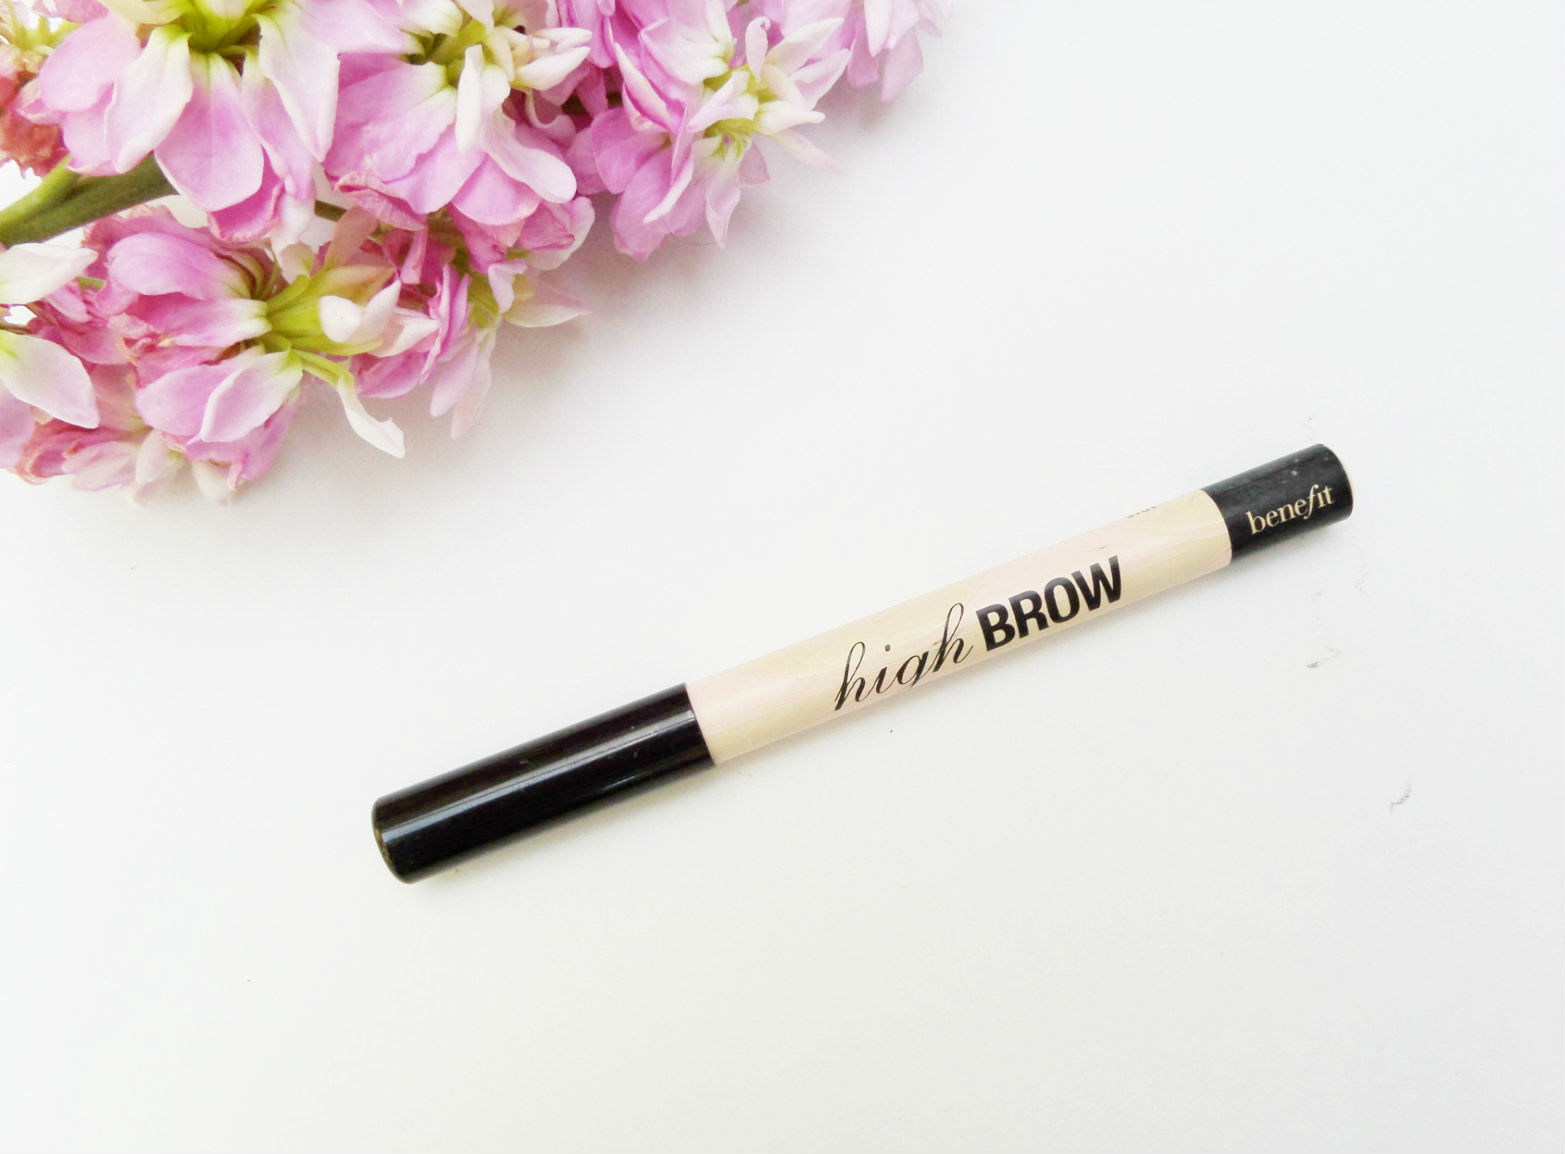 Benefit Cosmetics High Brow Pencil